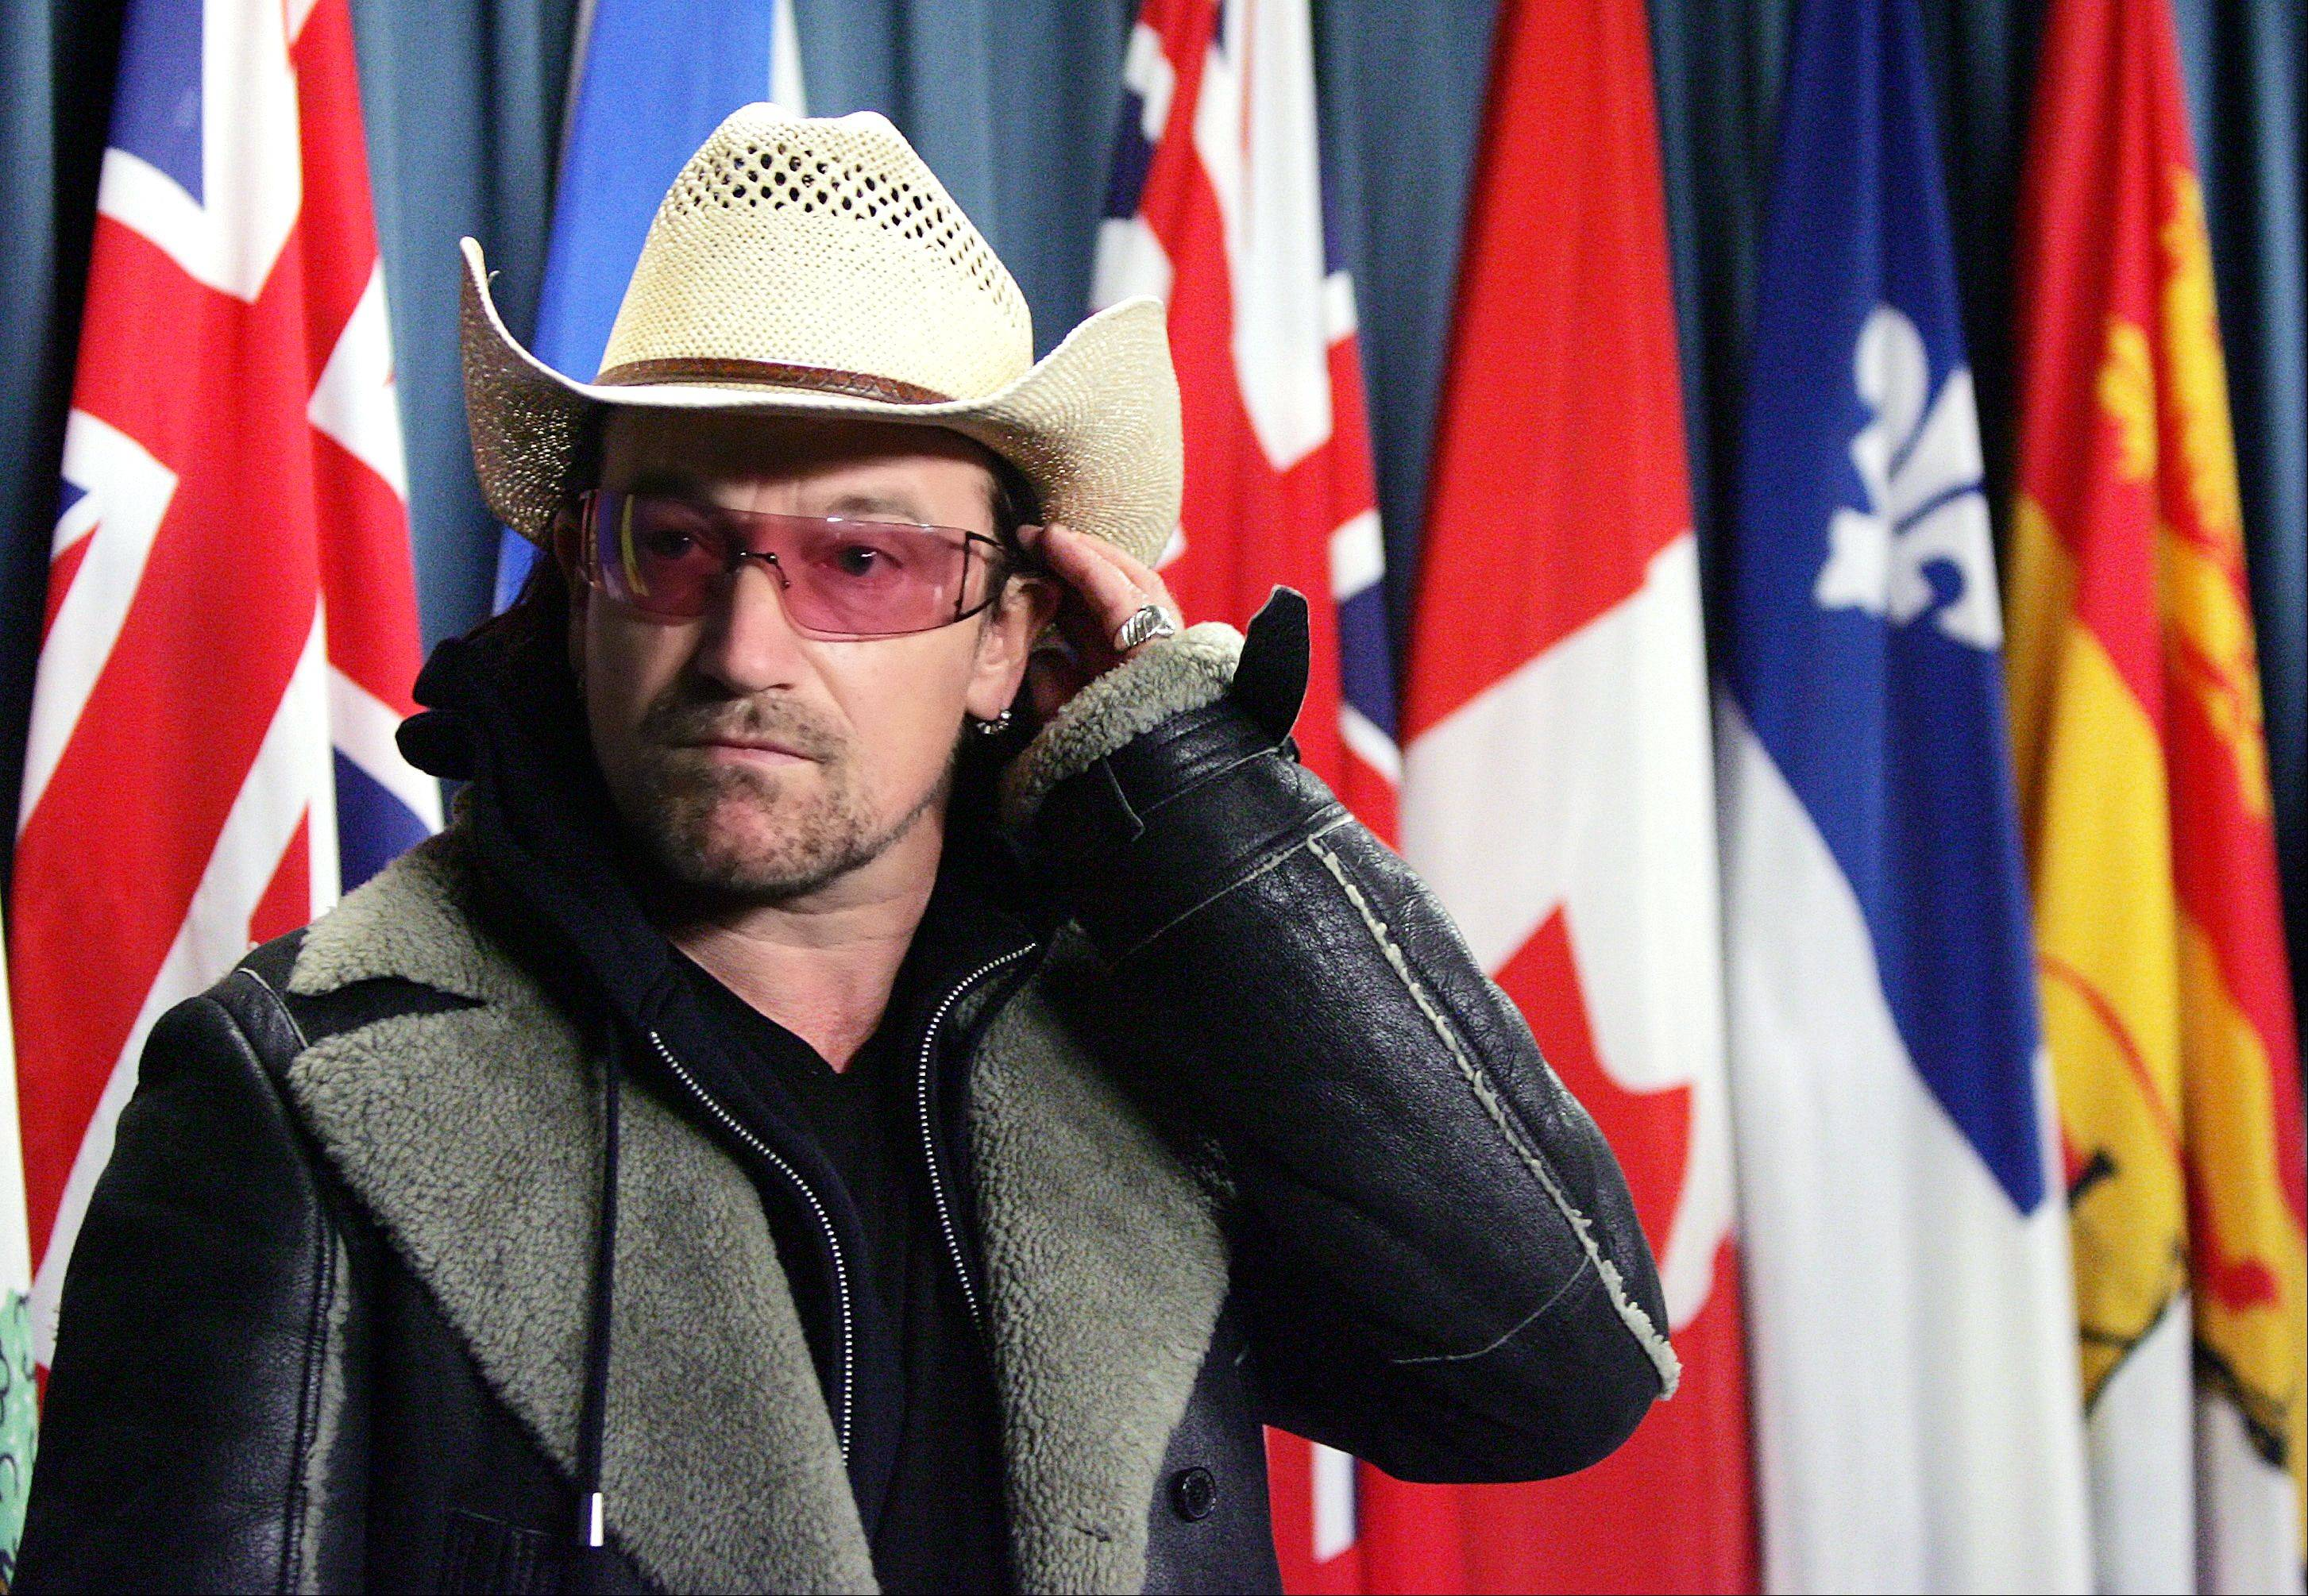 Irish rock star Bono attends a news conference on Parliament Hill in Ottawa Friday, Nov. 25, 2005 prior to U2's sold-out show at the Corel Centre. While in Ottawa Bono met with political leaders and addressed world poverty.